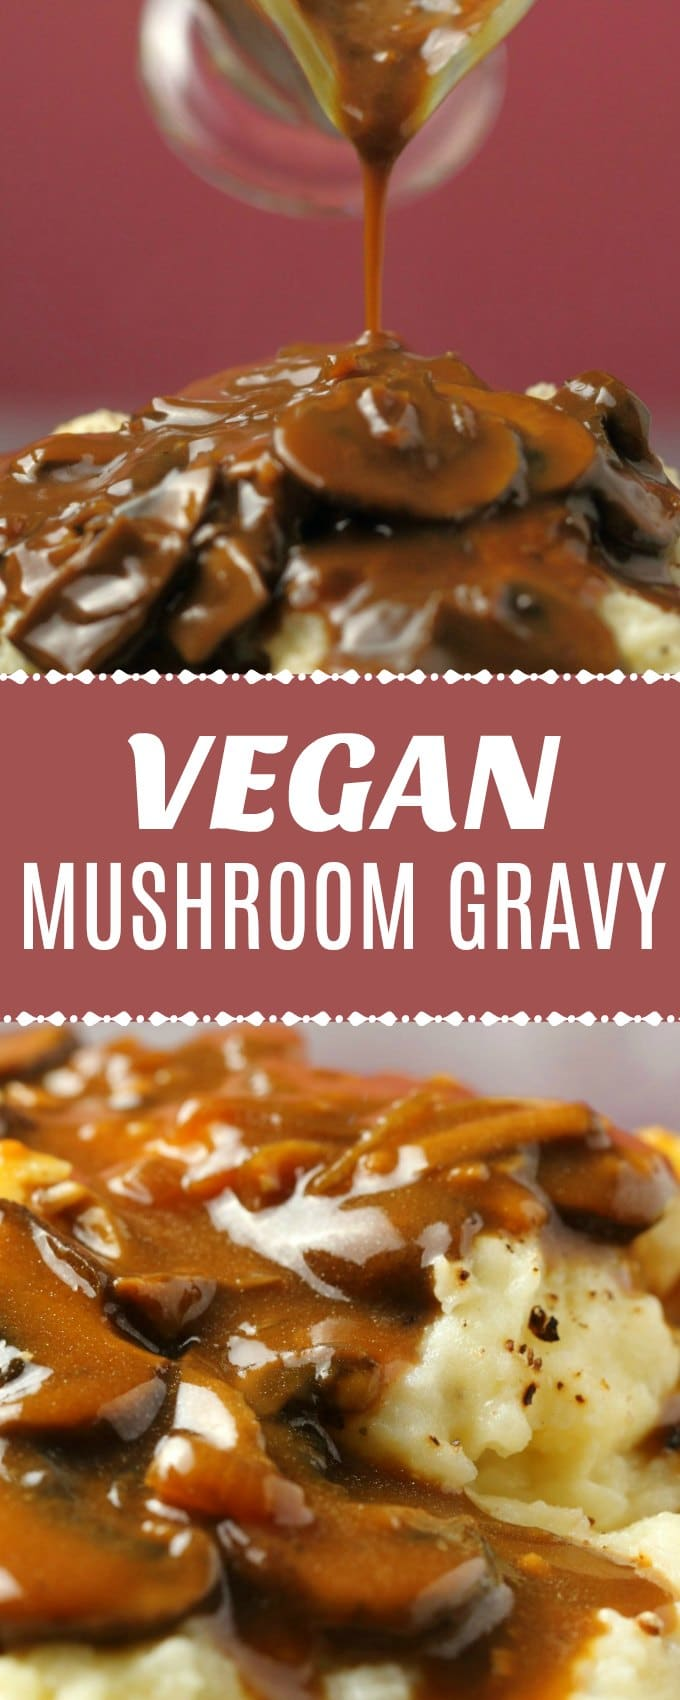 This vegan mushroom gravy is packed with mushroom flavor and totally divine poured over absolutely everything. Rich, creamy and perfect. | lovingitvegan.com